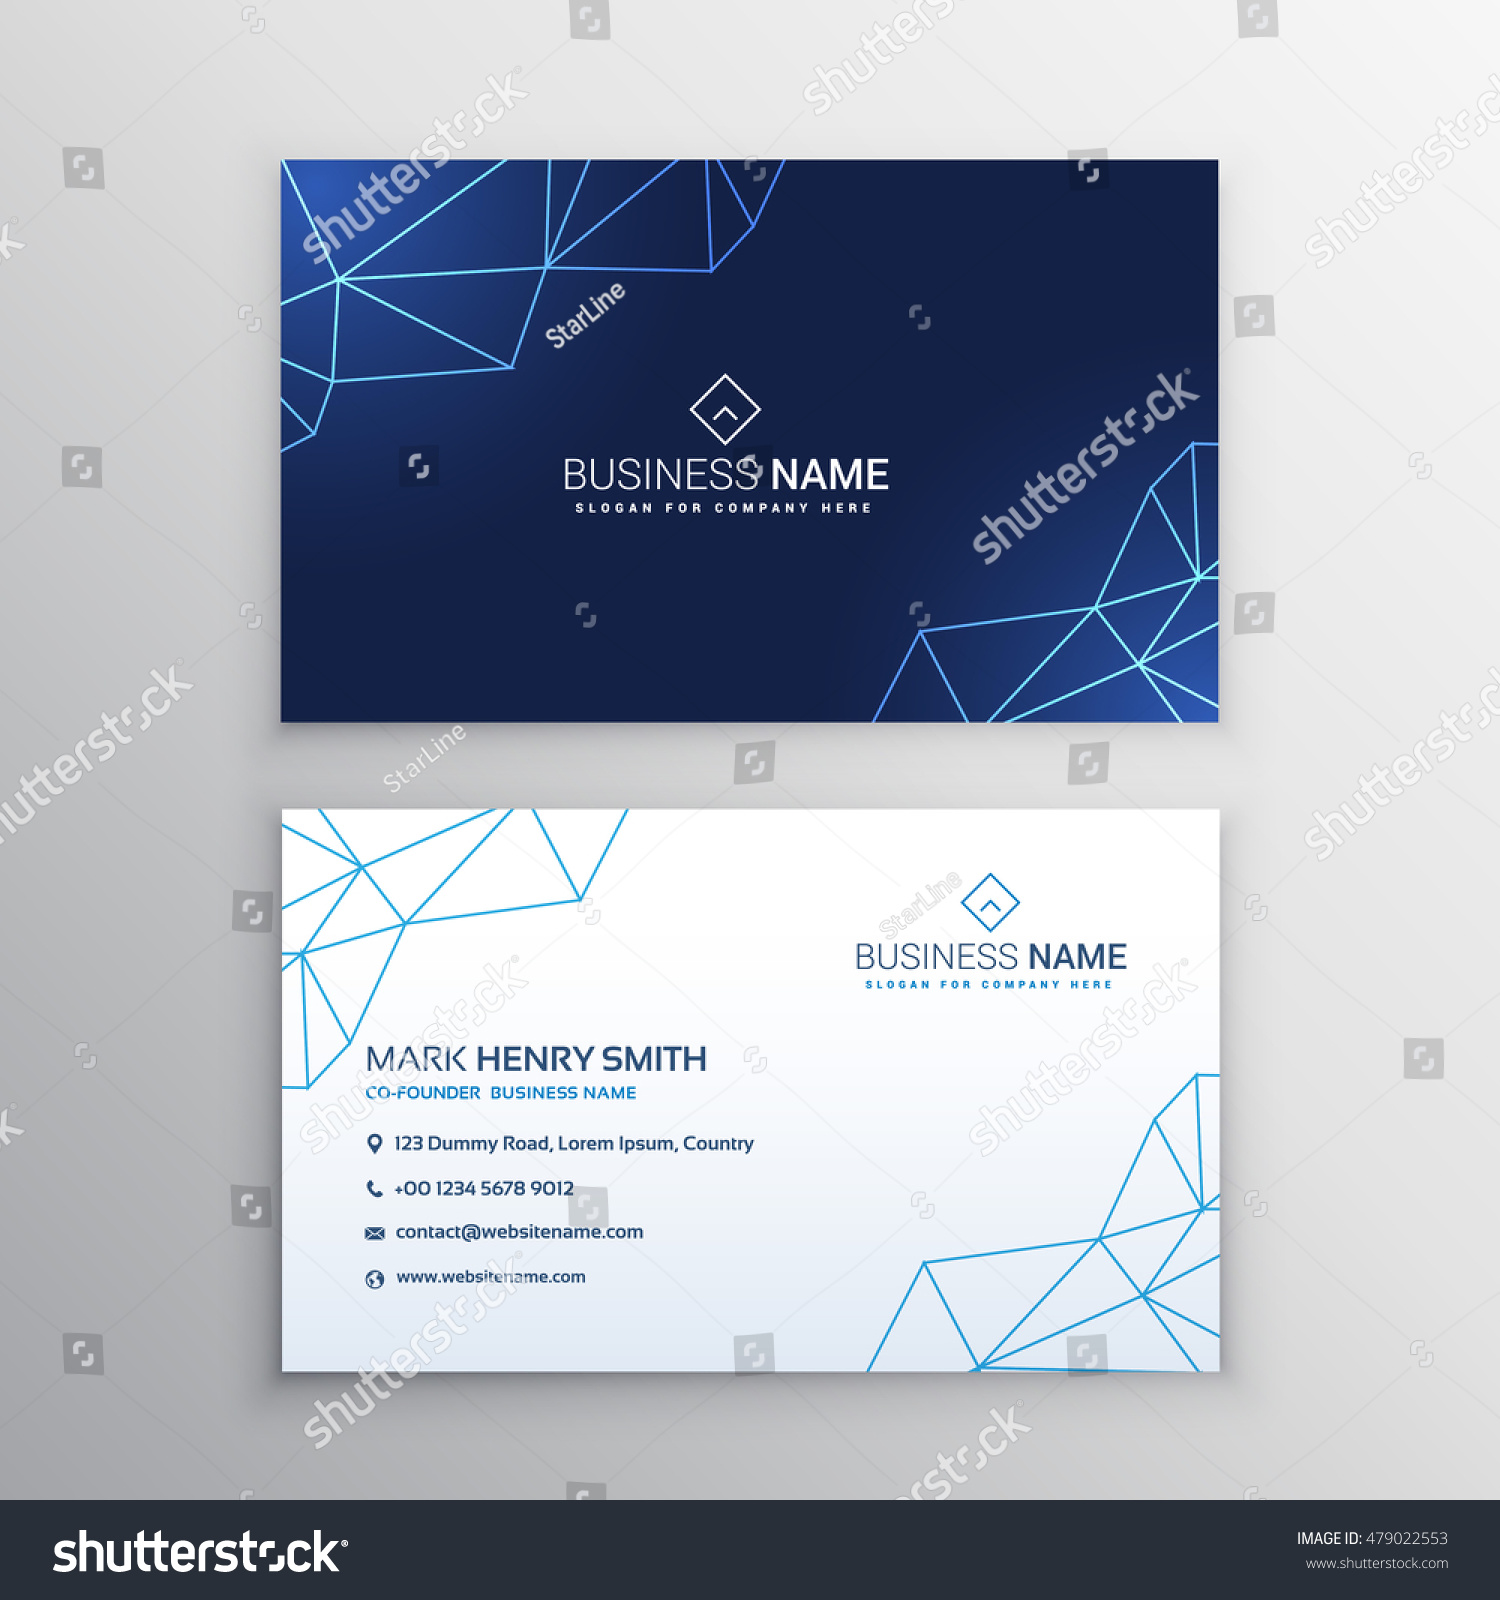 technology business card design template stock vector